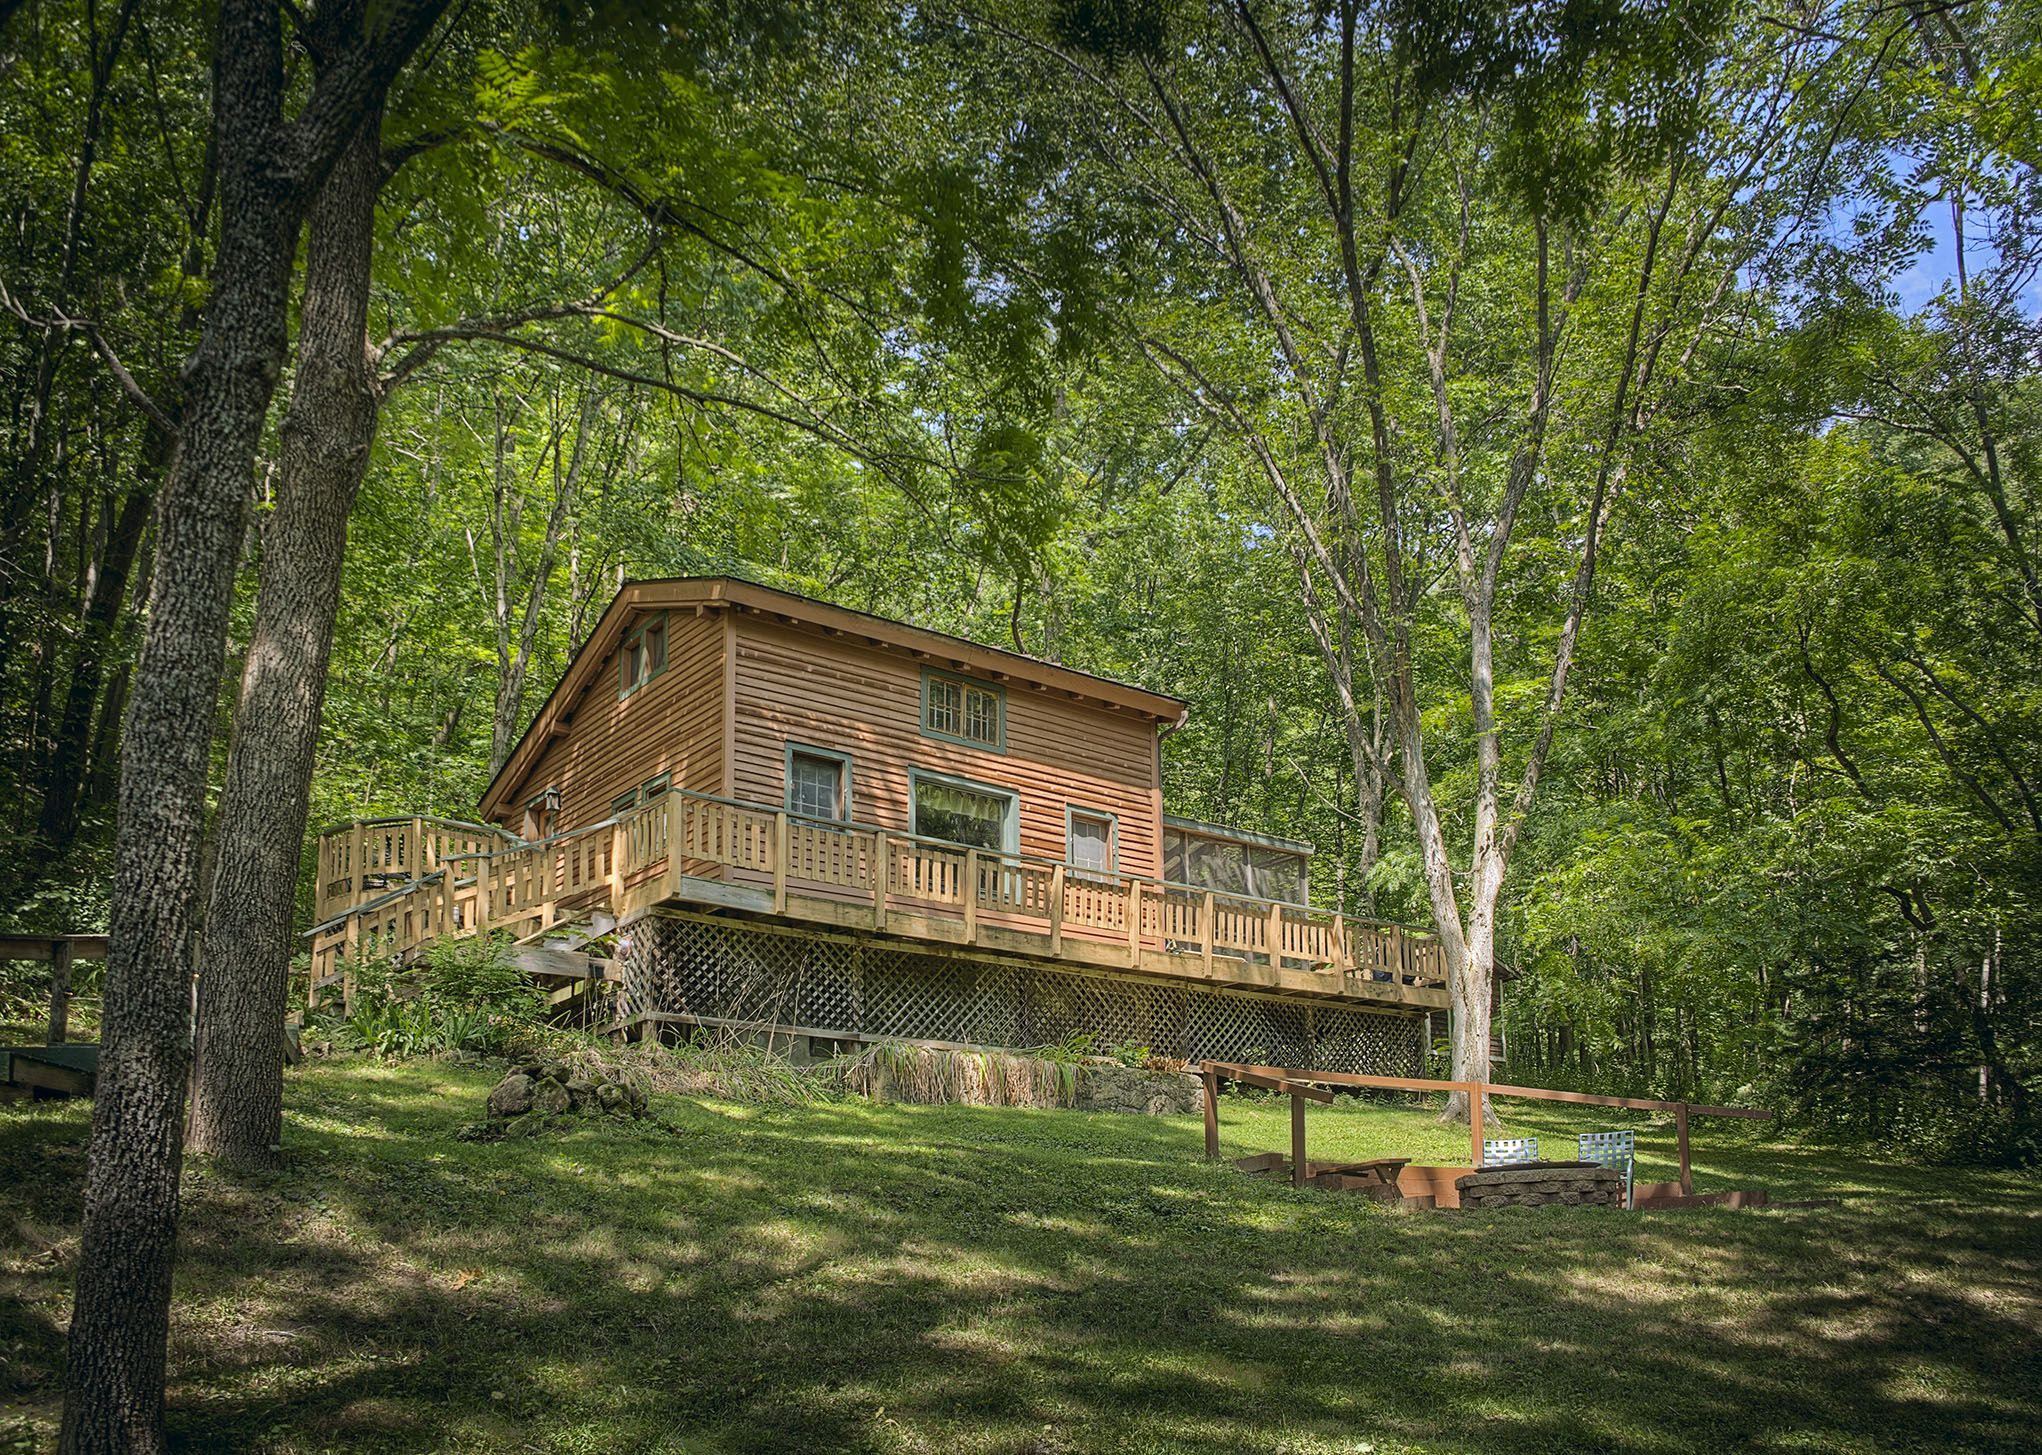 states rental lakes a views wisconsin com with front america cabin cabins vrbo rent pin log in lake beautiful and of vacation united from woodruff